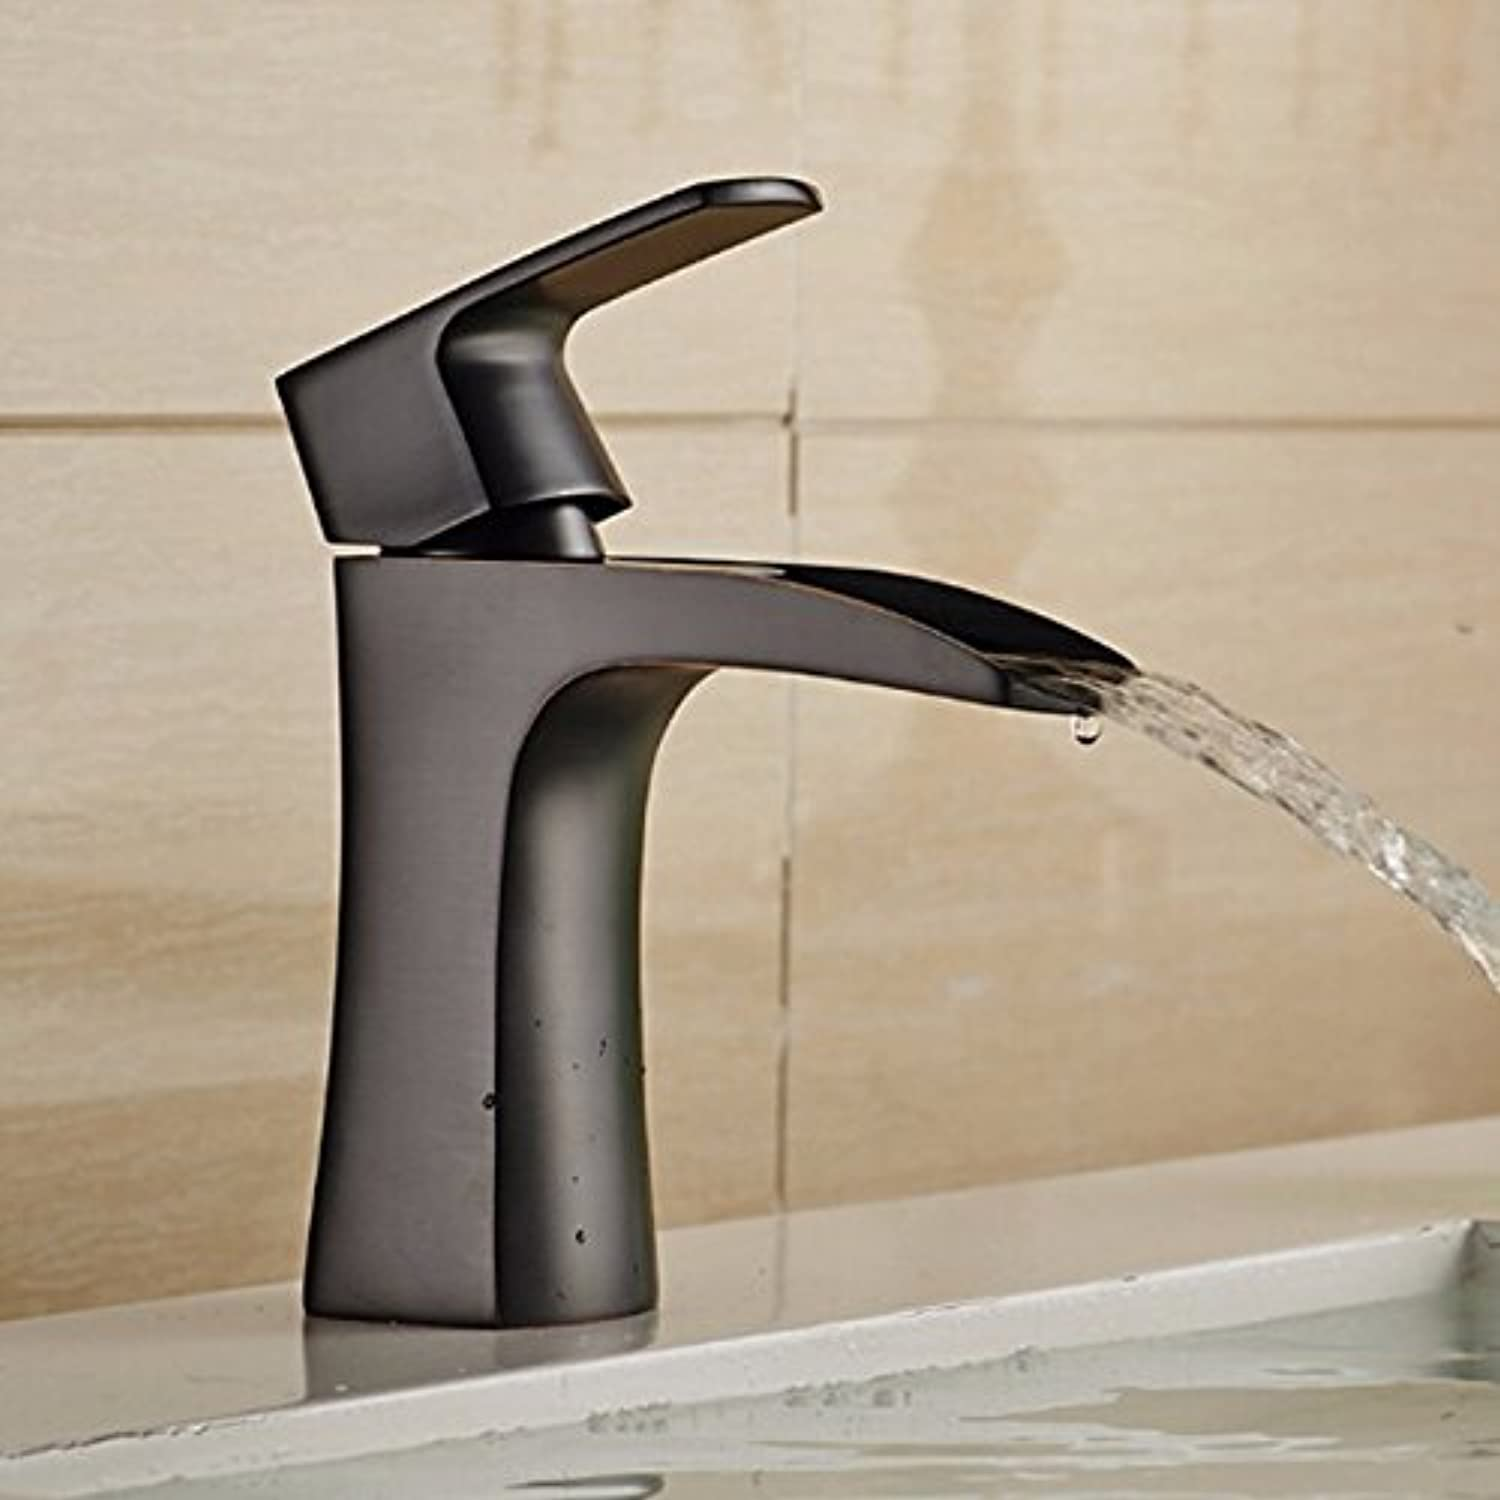 Makej Vidric New Arrival Waterfall Faucet Bathroom Basin Faucet Black Oil-Rubbed Bronze Sink Faucet Deck Mounted Sink Mixer Water Tap,A